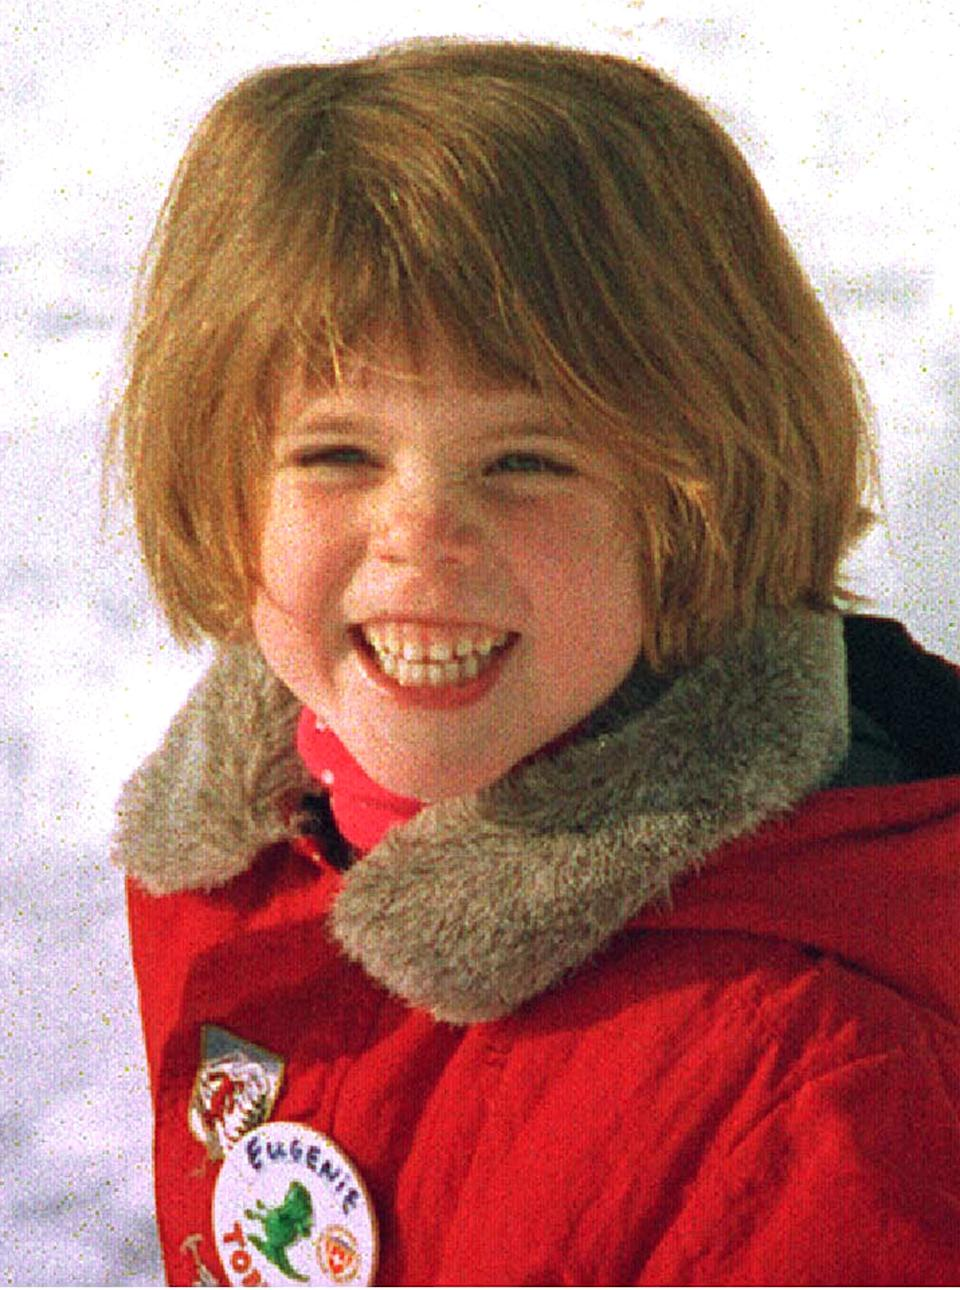 File photo dated 31/12/94 of Princess Eugenie, younger daughter of the Duchess of York, holding a balloon on the ski slopes of Klosters. The youngest daughter of the Duke of York and Sarah, Duchess of York, is turning 30 on Monday.